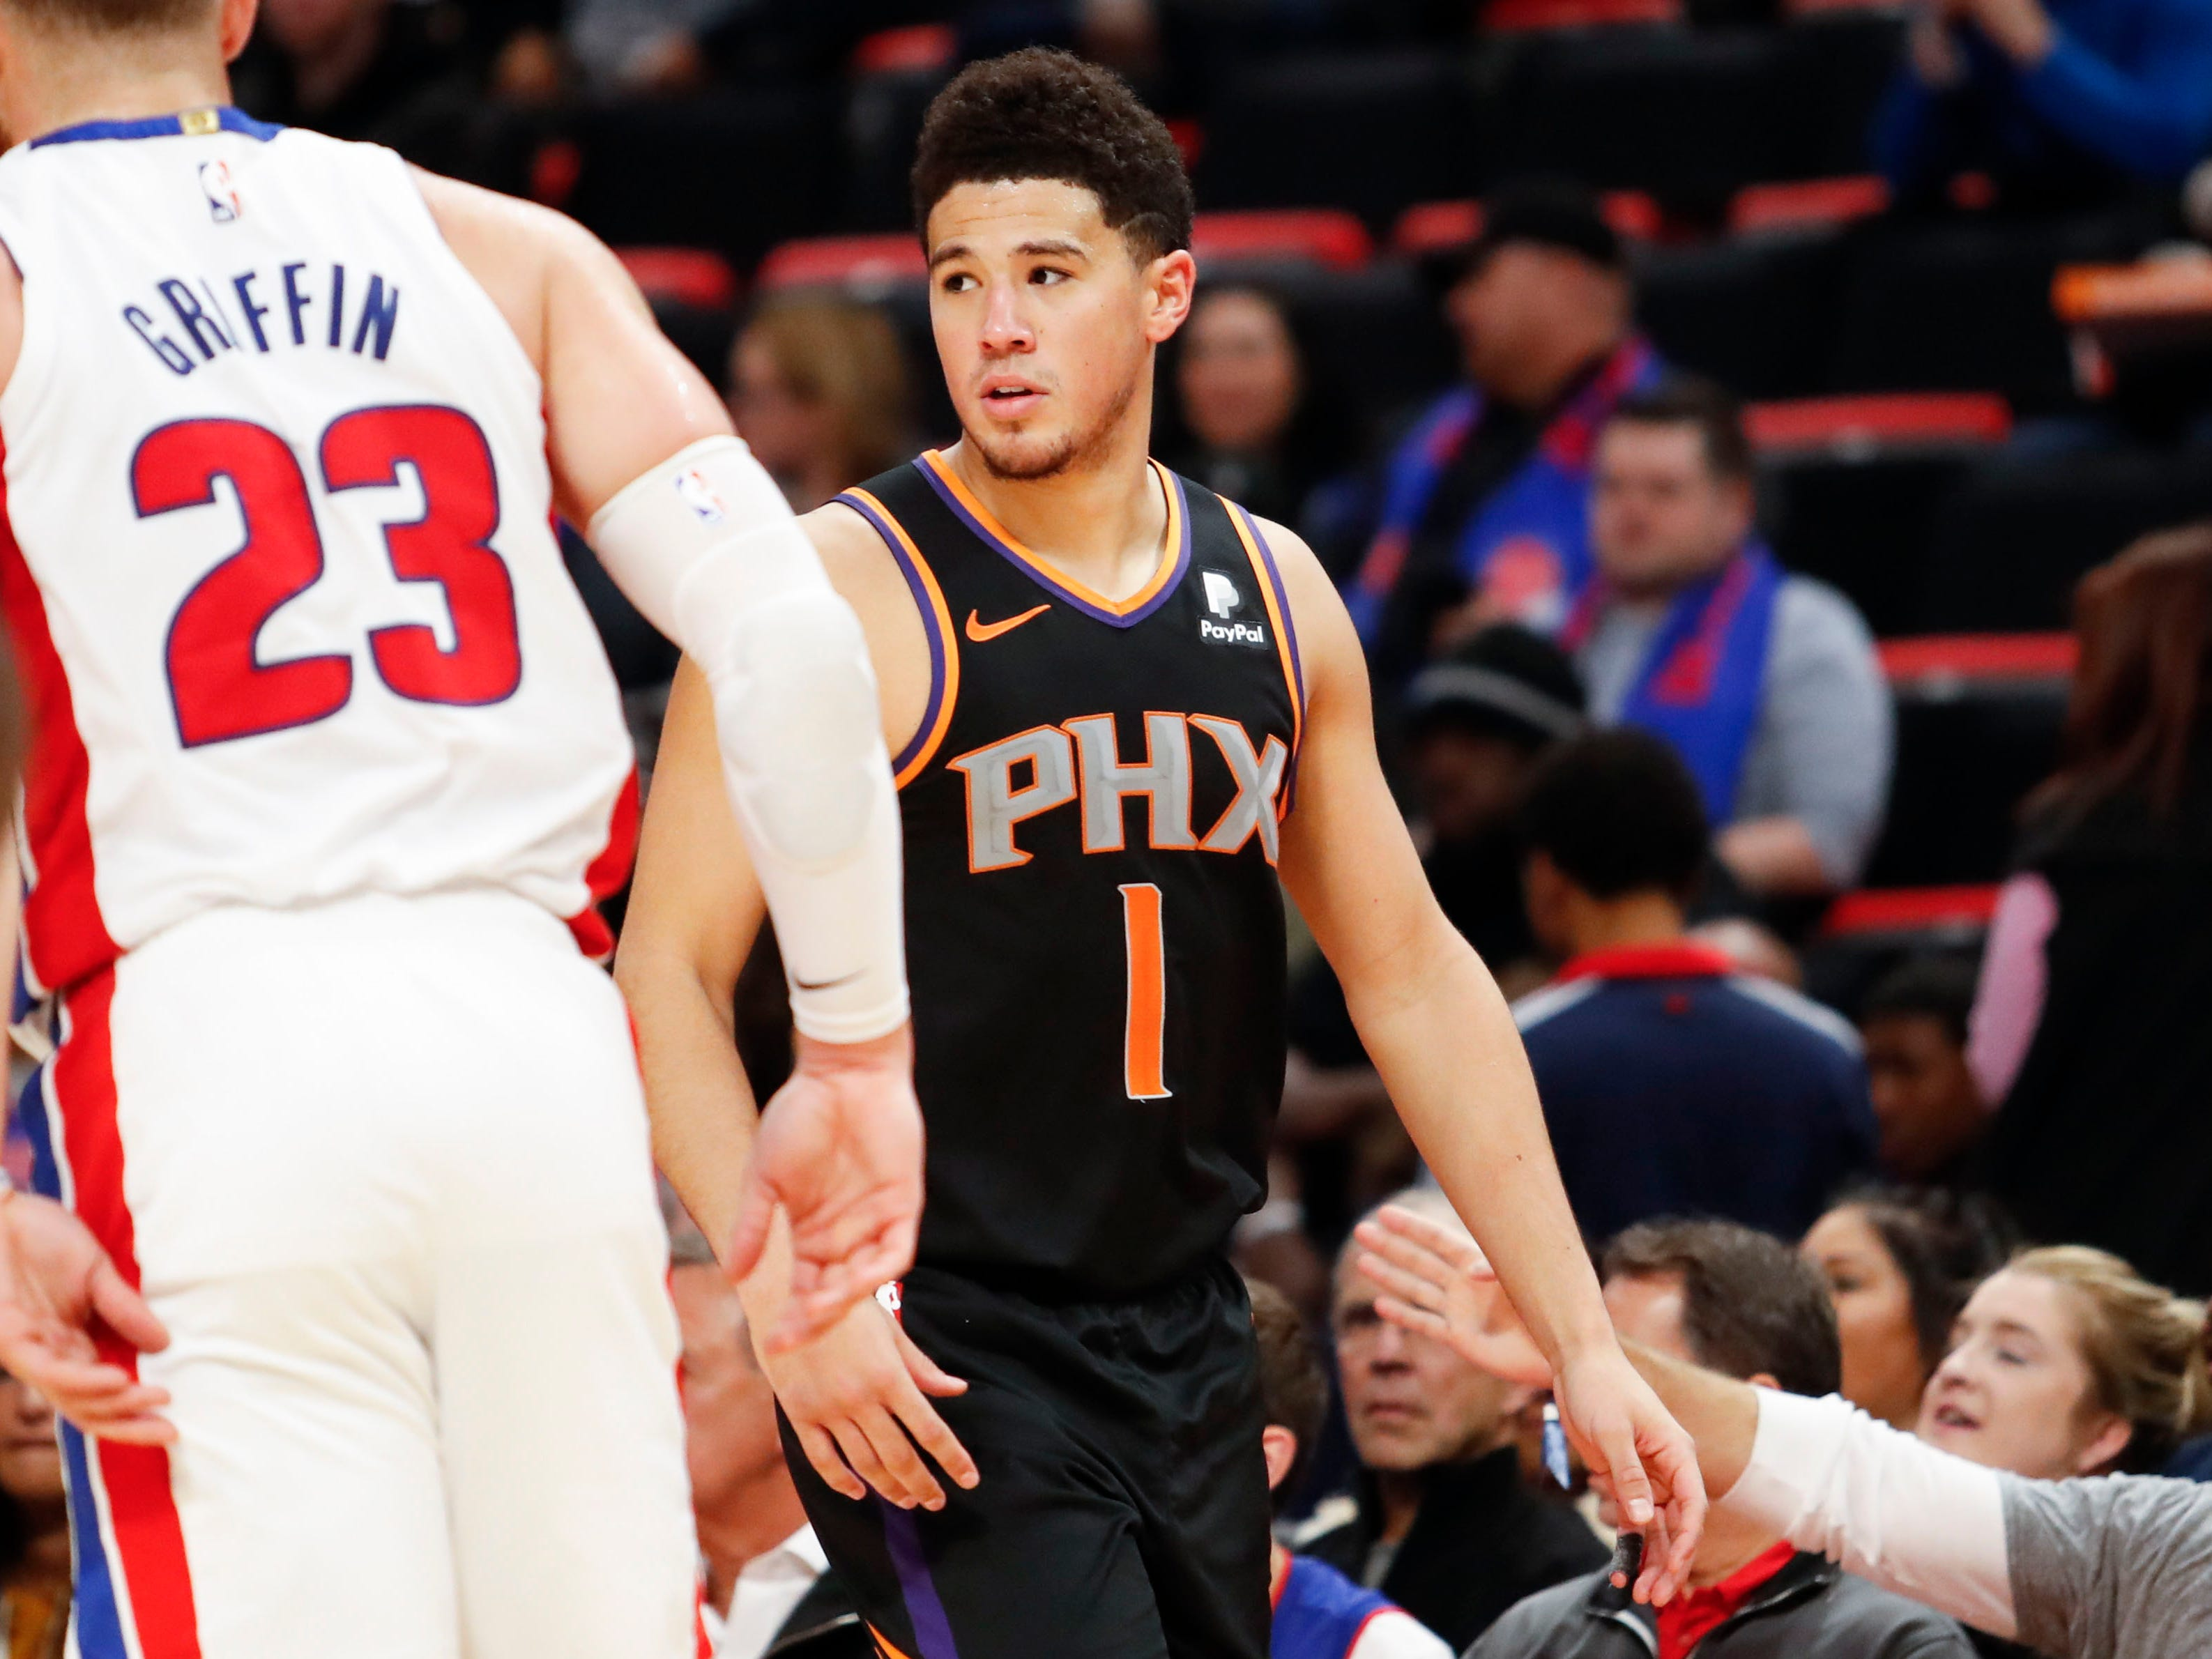 Nov 25, 2018; Detroit, MI, USA; Phoenix Suns guard Devin Booker (1) looks on during the fourth quarter against the Detroit Pistons at Little Caesars Arena. Mandatory Credit: Raj Mehta-USA TODAY Sports